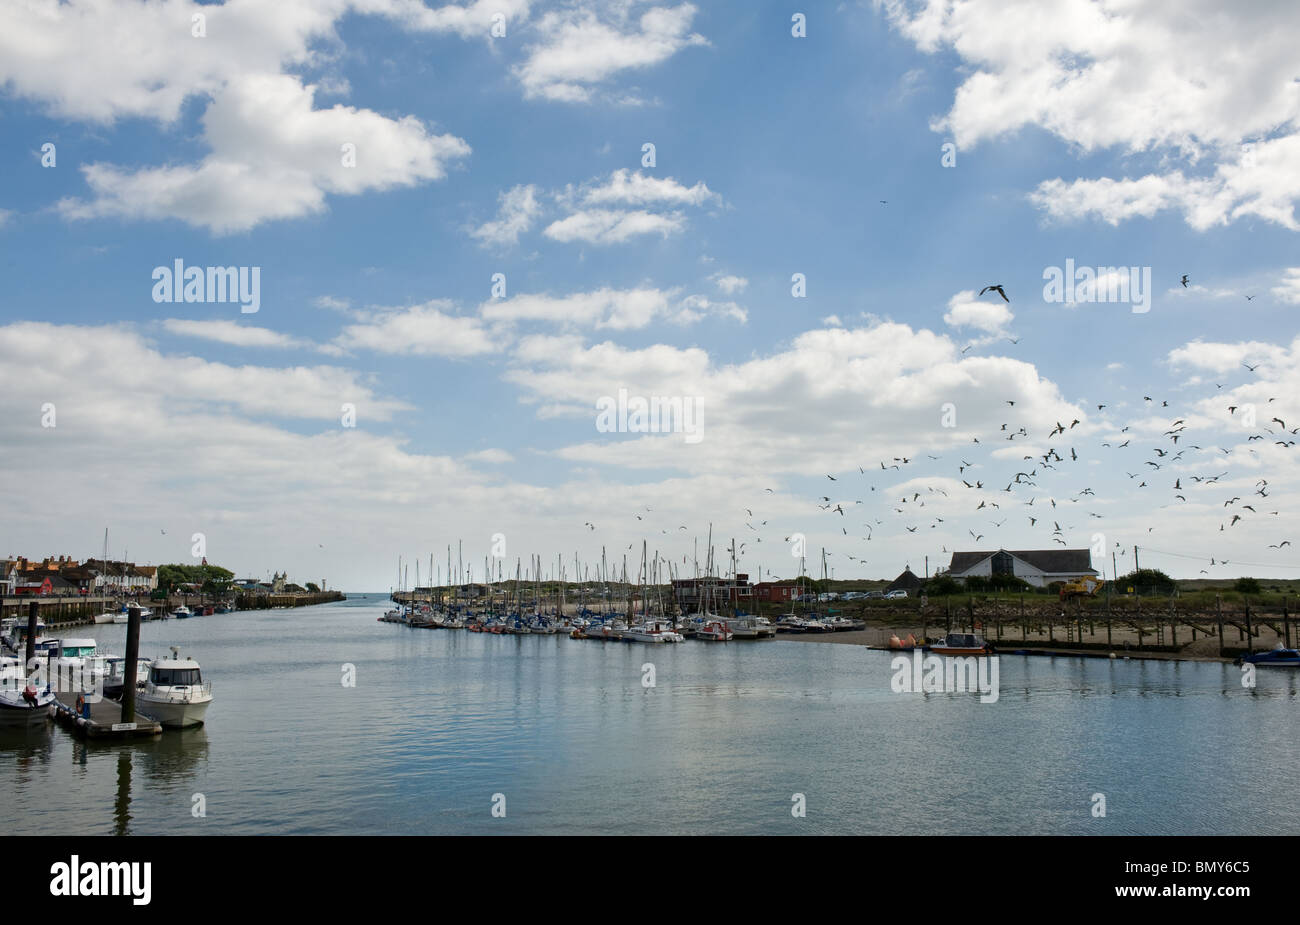 The River Arun at Littlehampton in West Sussex.  Photo by Gordon Scammell - Stock Image